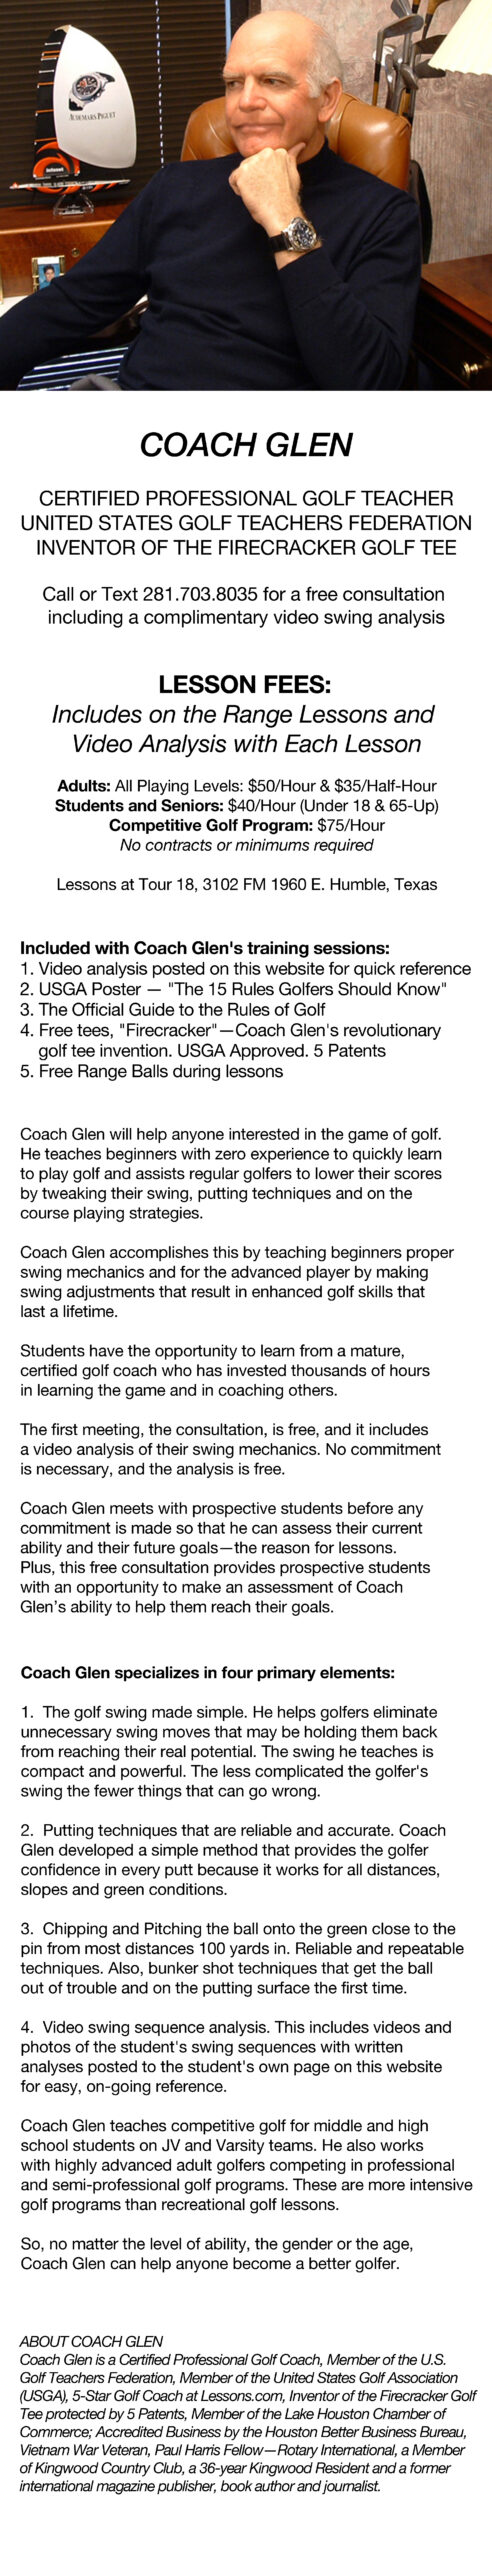 Coach glen HOME PAGE